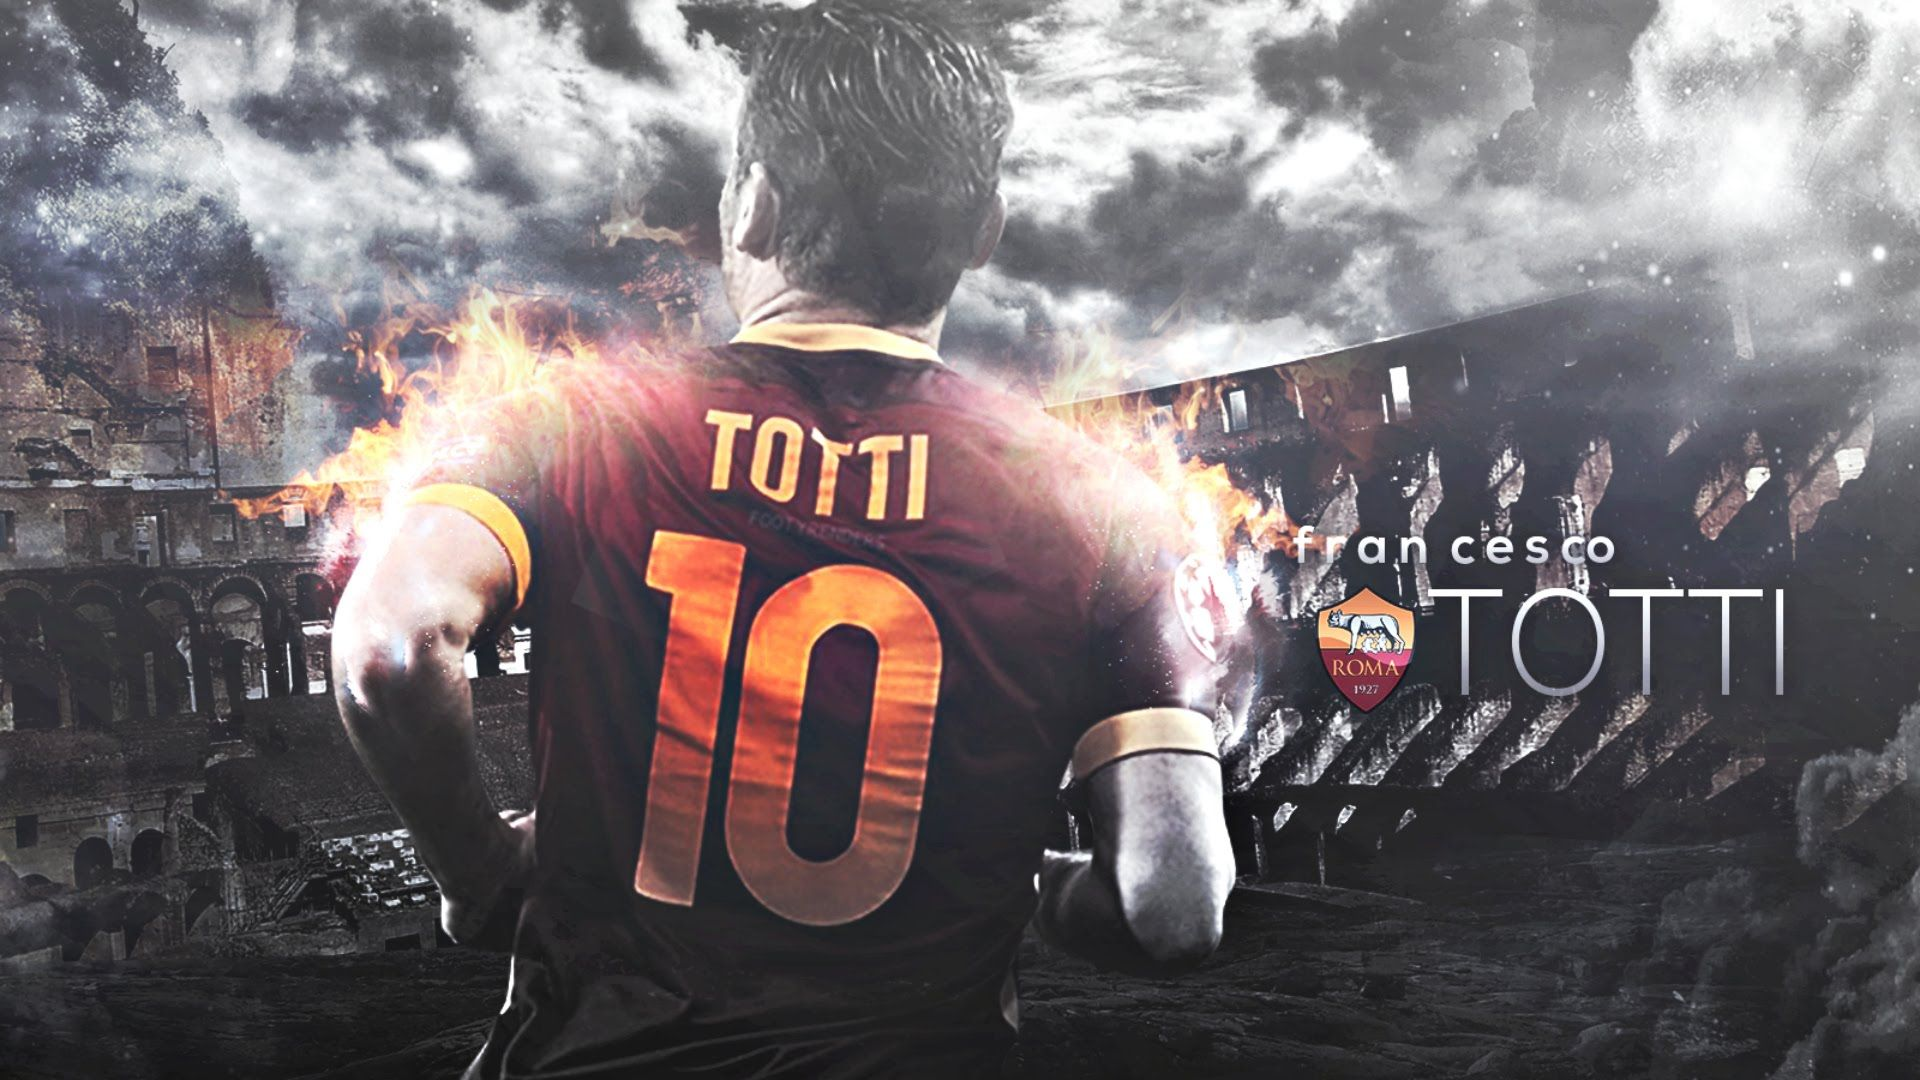 5aec4cd021 Francesco Totti HD Images whb 2  FrancescoTottiHDImages  FrancescoTotti   Totti  football  soccer  asroma  wallpapers  hdwallpapers